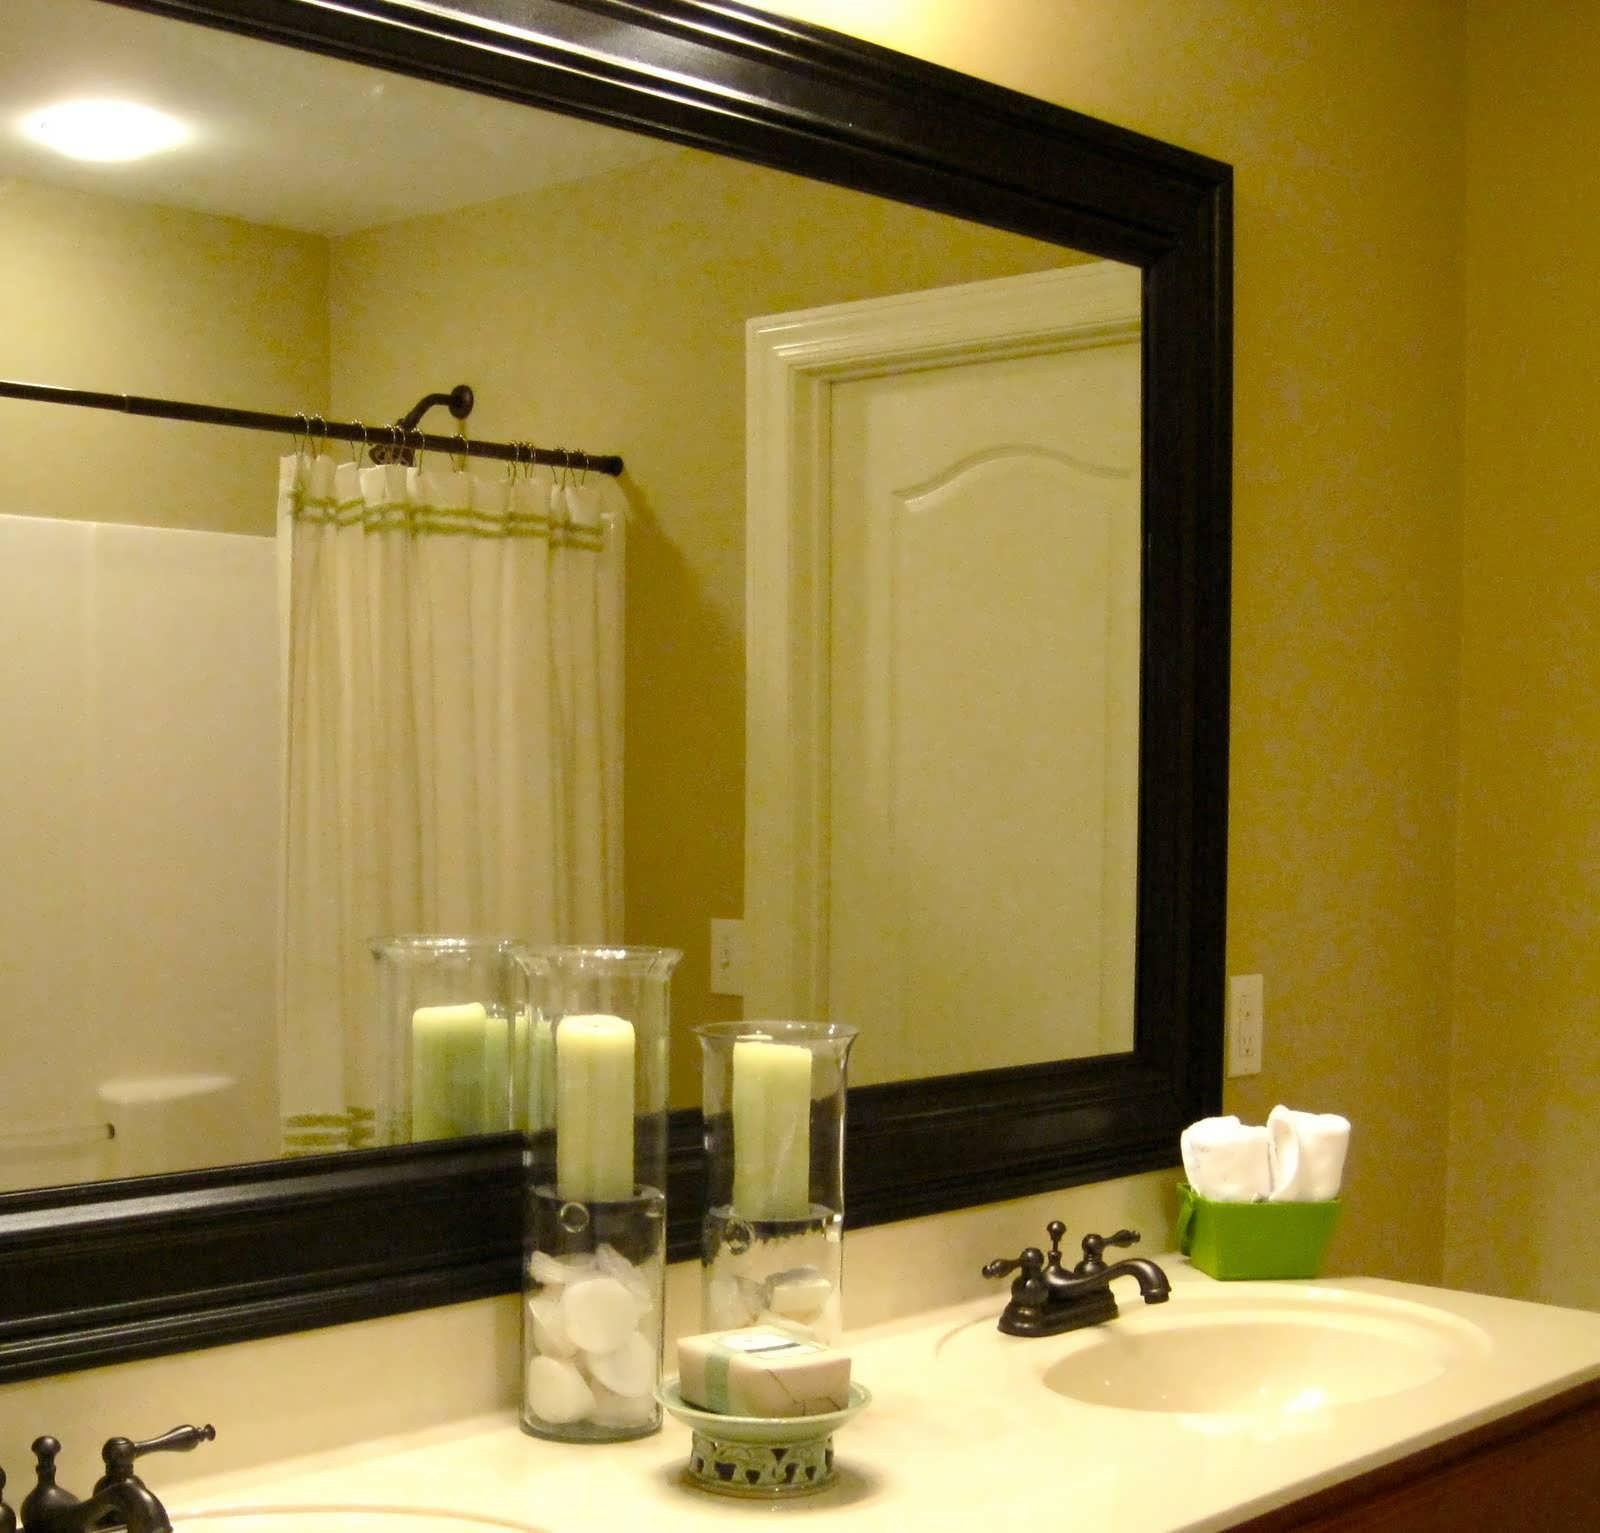 Bathroom Cabinets : Round Bathroom Wall Mirror Full Wall Bathroom For Led Lighted Mirrors (Image 5 of 20)